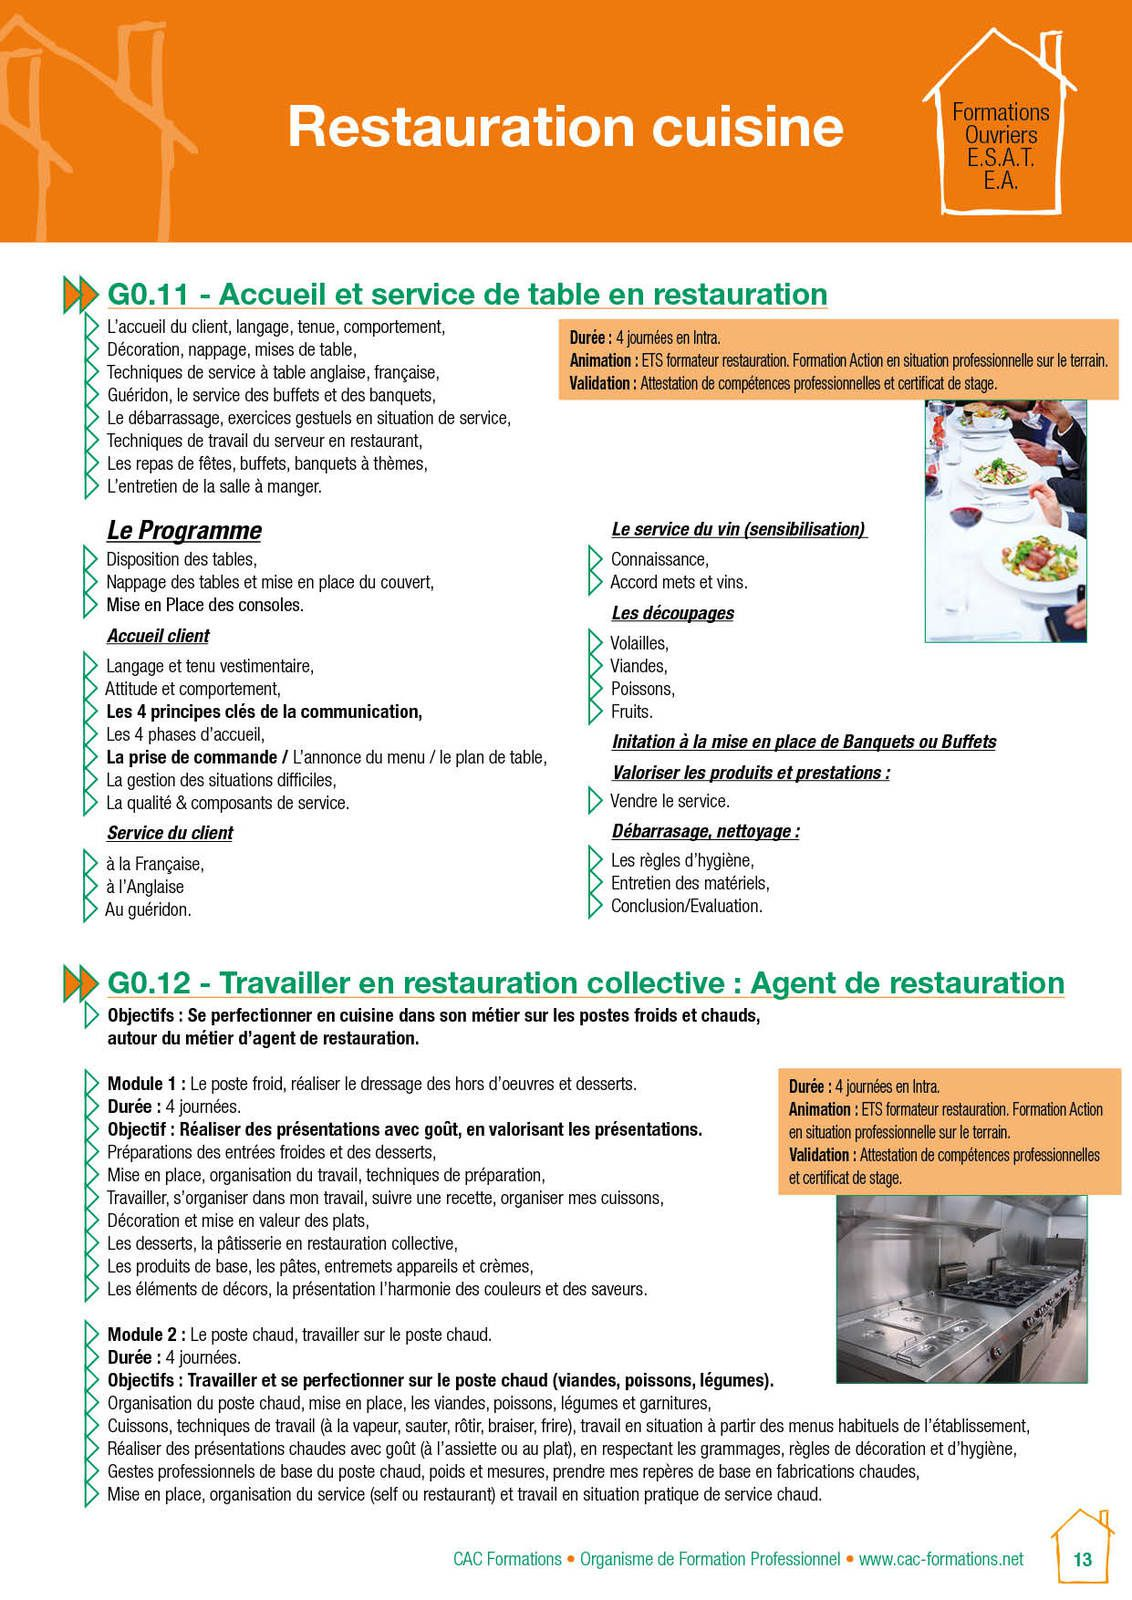 Pratiquer l'HACCP en Restauration Collective